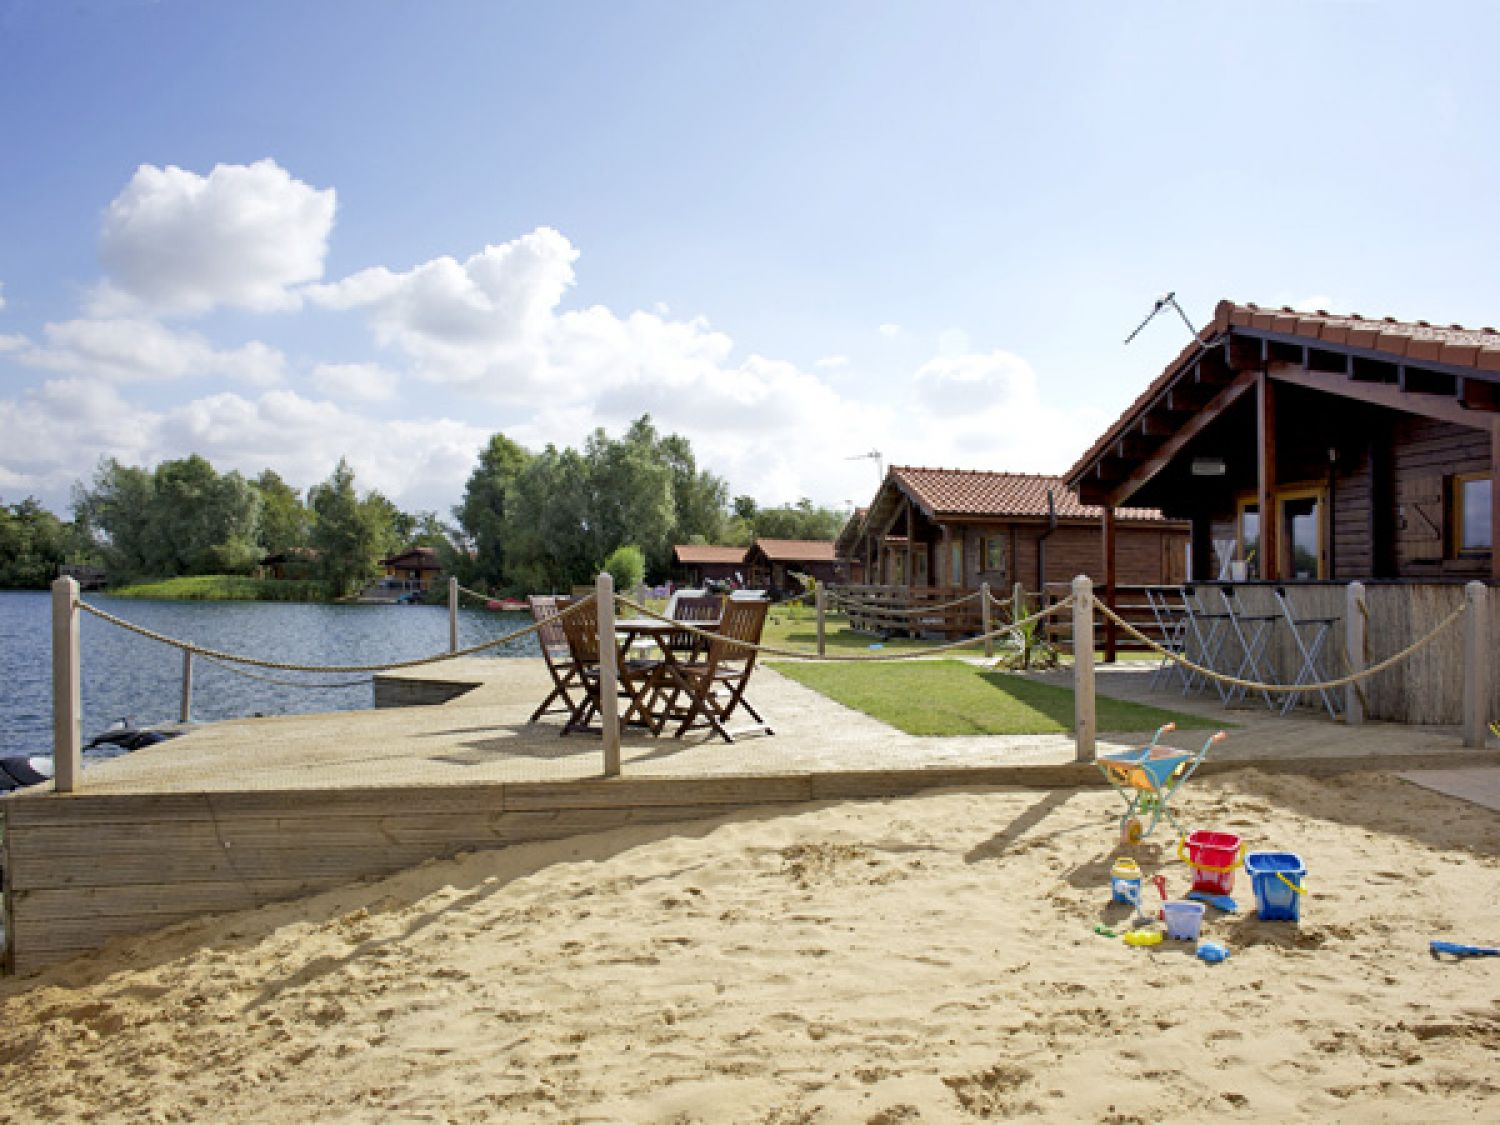 No 24 Tattershall Country Park - Holiday Park in Horncastle, Lincolnshire, England